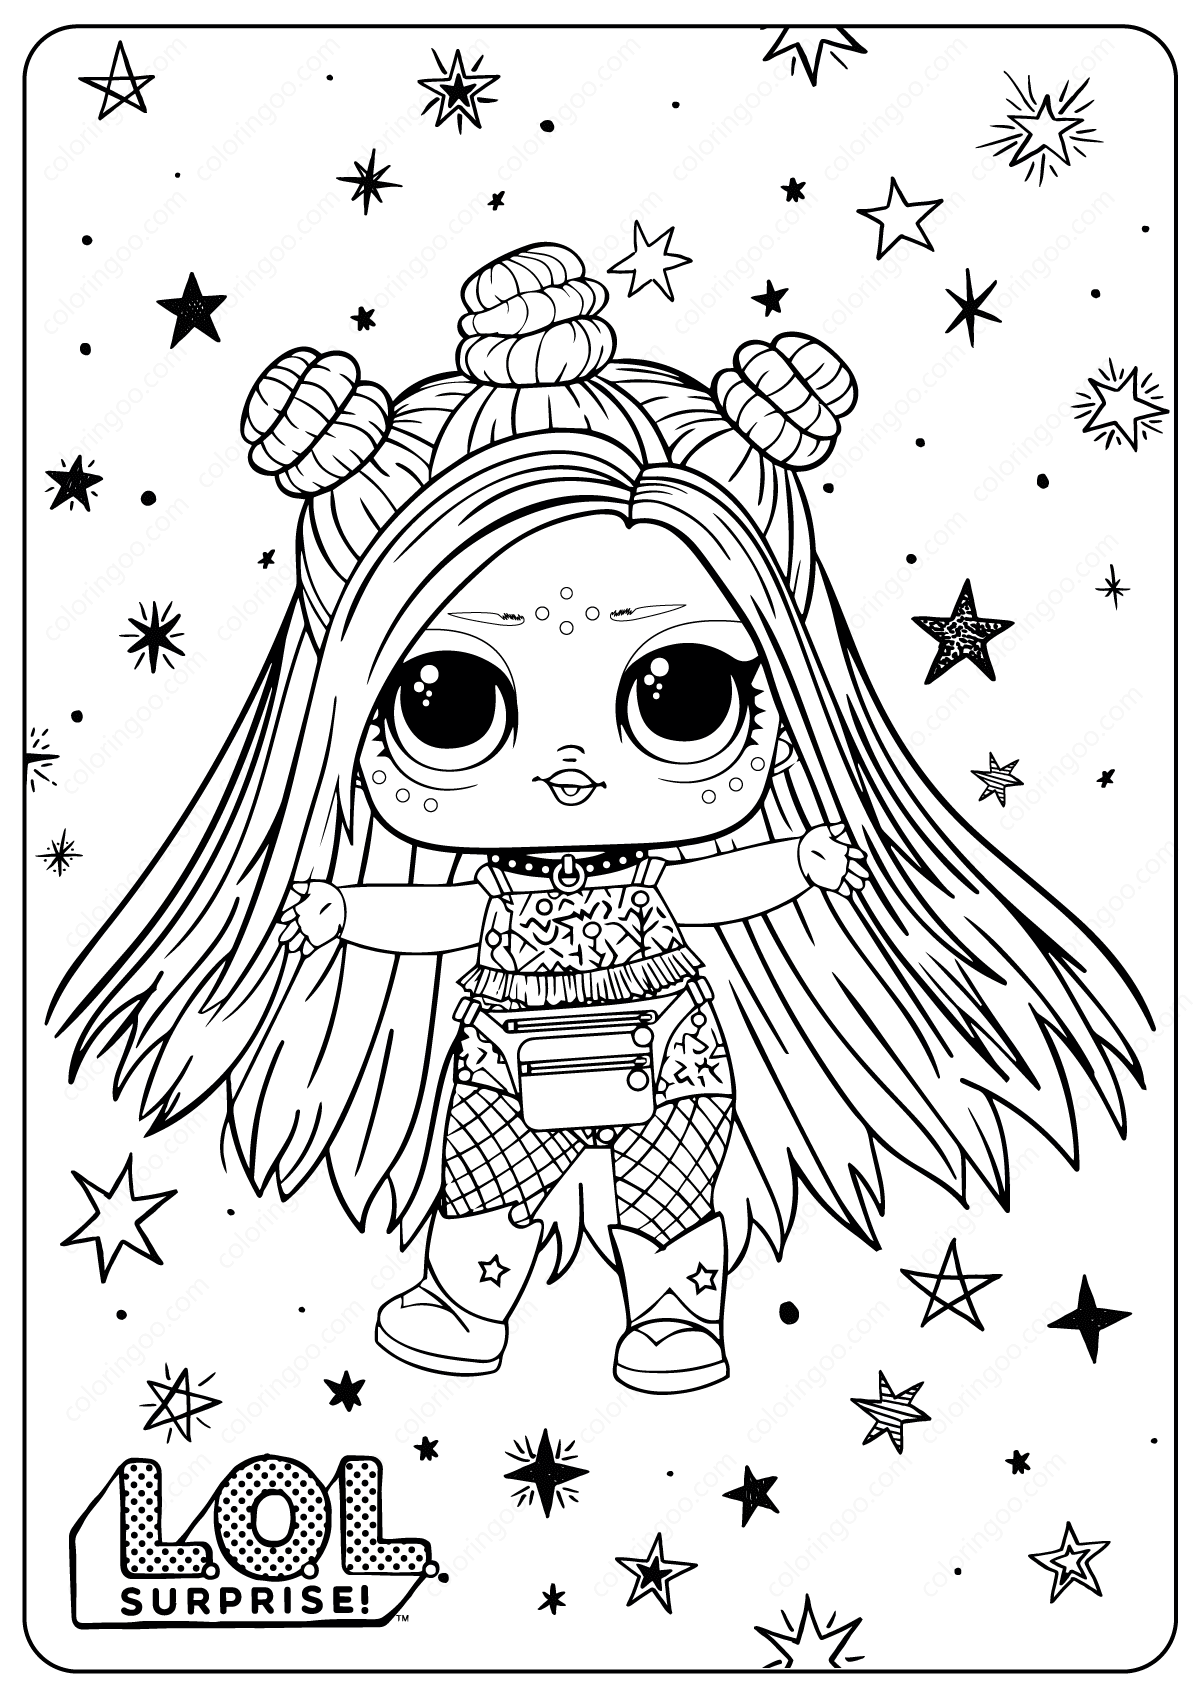 Free Printable Lol Surprise Hairgoals Coloring Pages Barbie Coloring Pages Shopkins Colouring Pages Kids Printable Coloring Pages